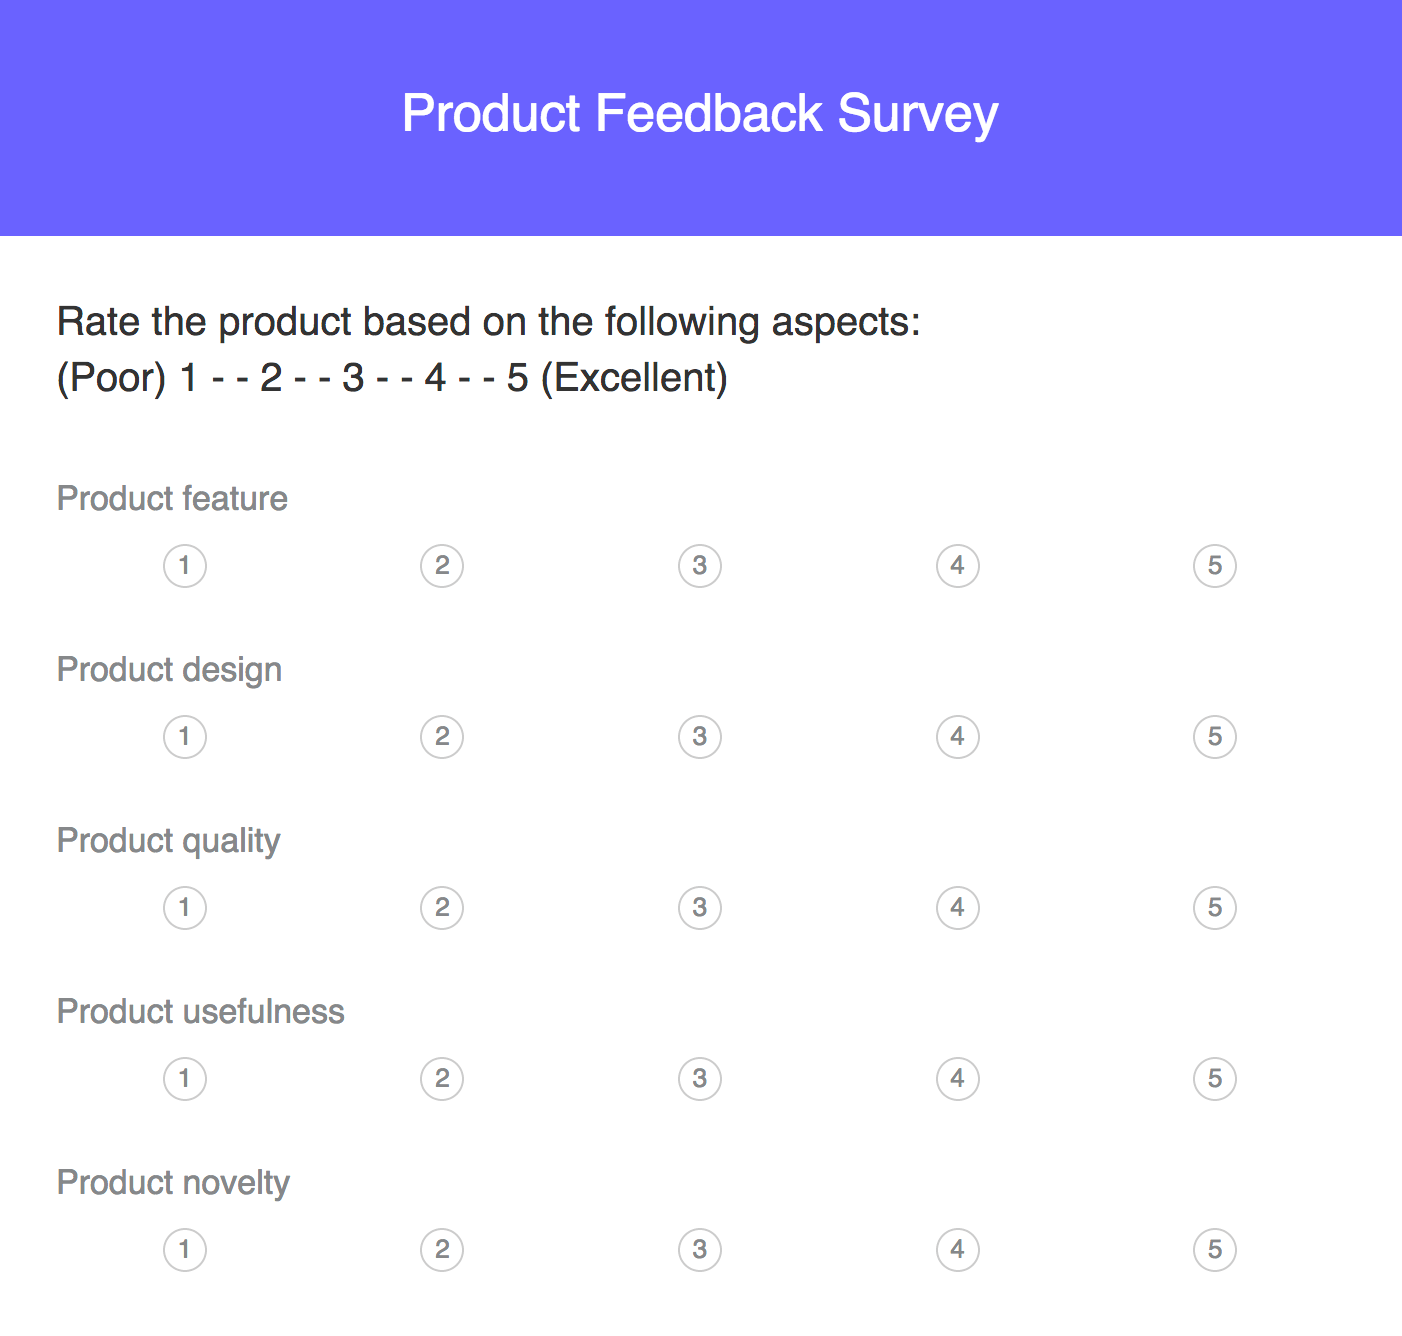 Product Feedback Survey - Experty-made Questions and Template